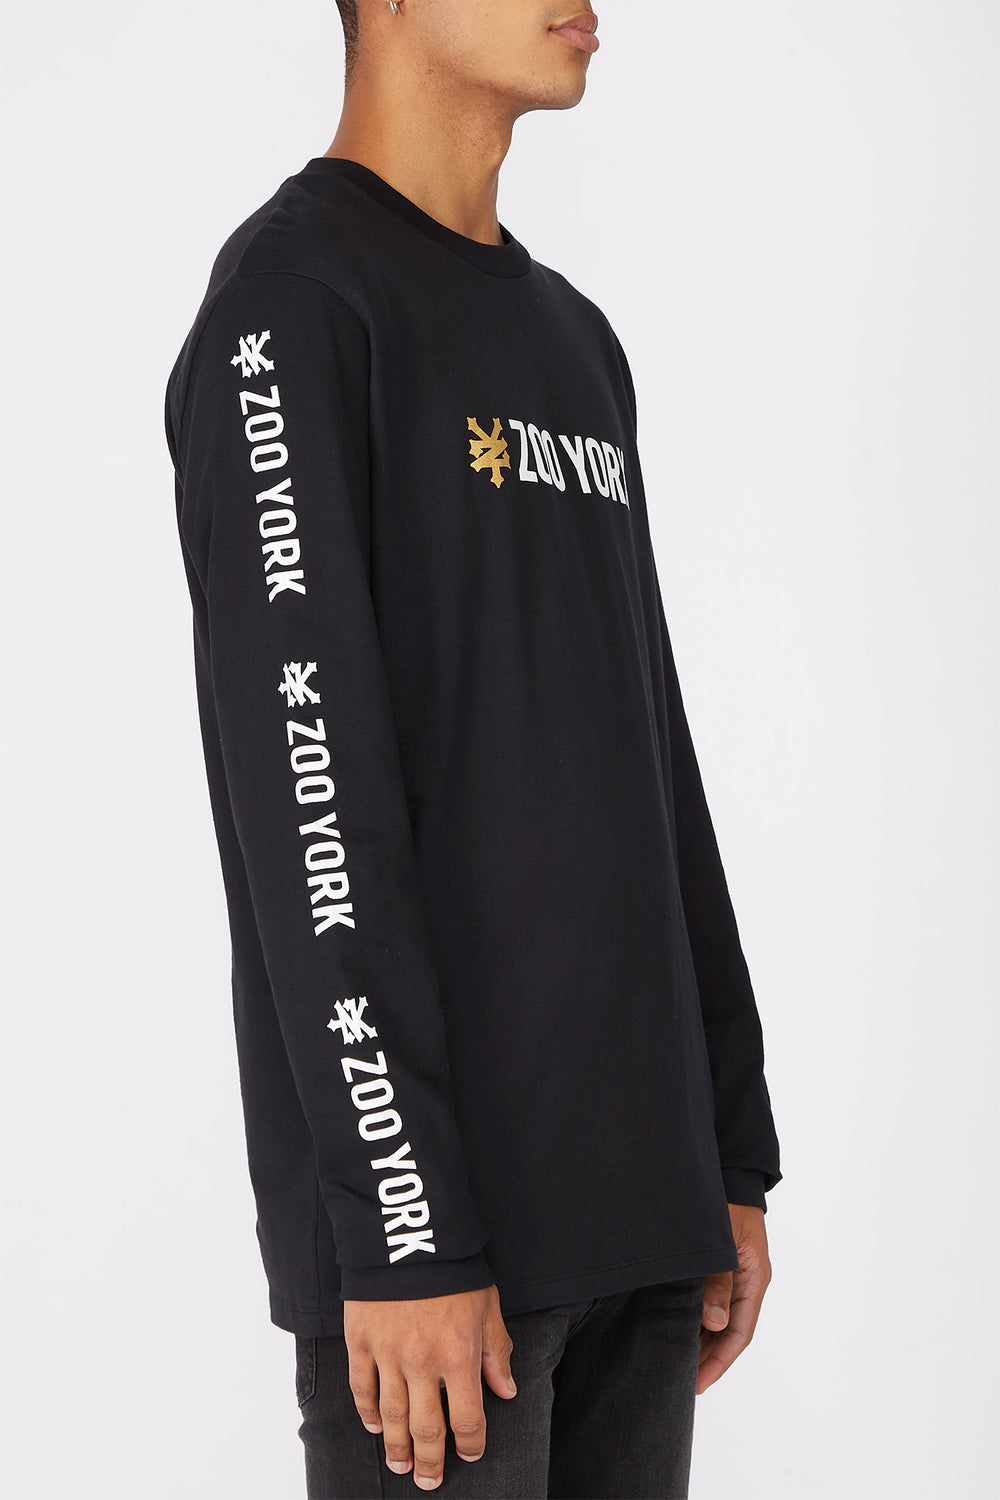 Zoo York Mens Classic Logo Long Sleeve Shirt Black